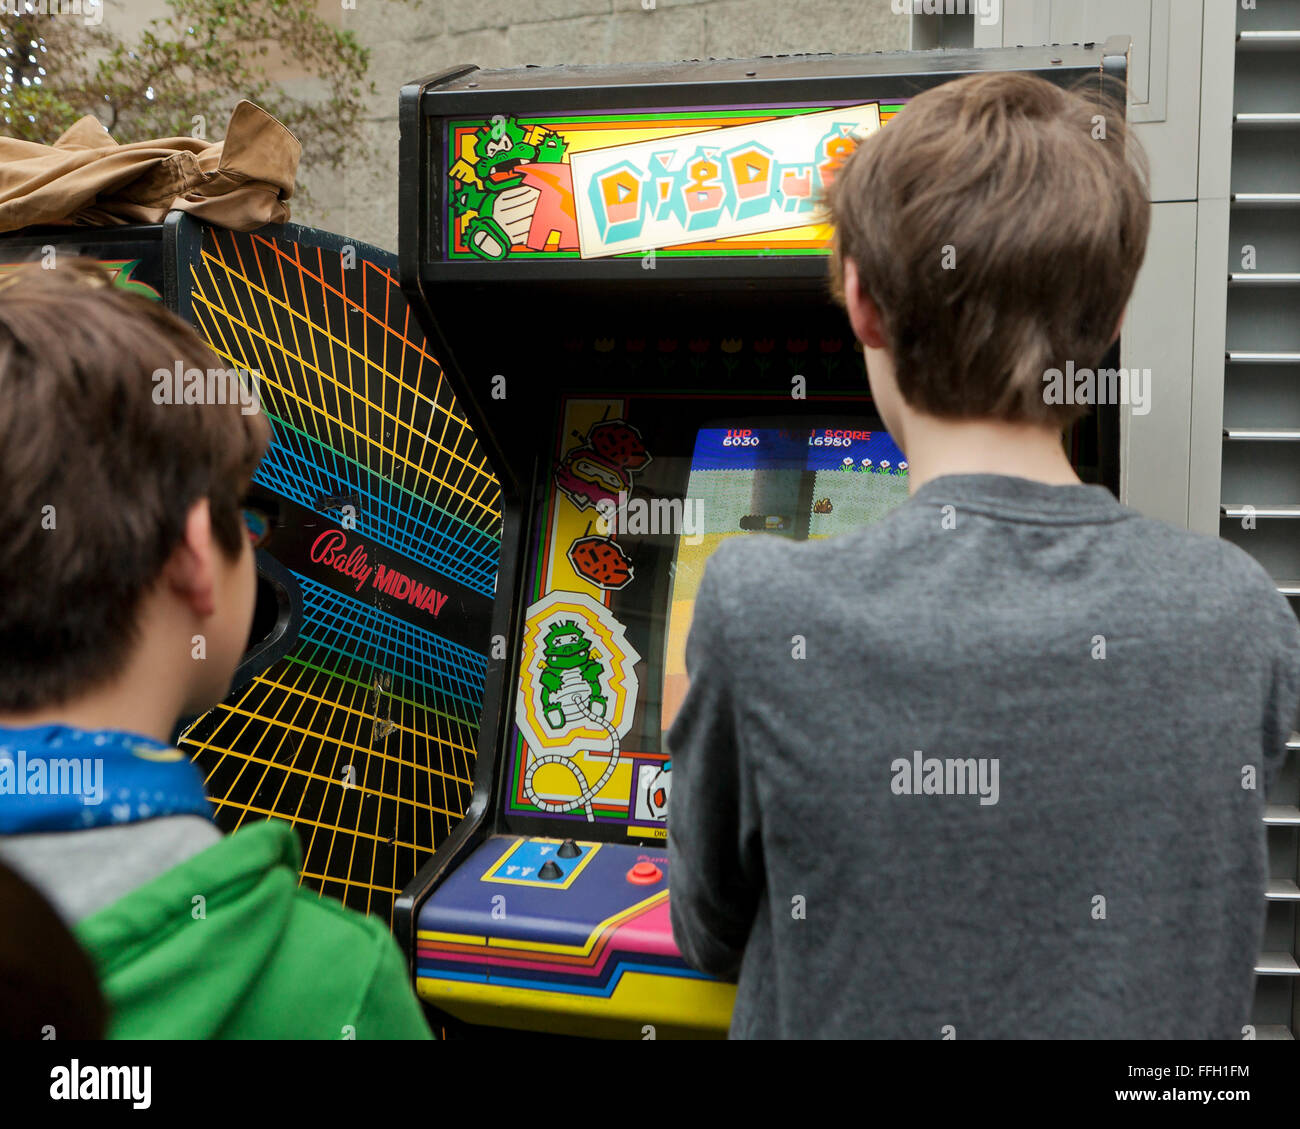 Young boys playing the classic Dig Dug video arcade game - USA - Stock Image